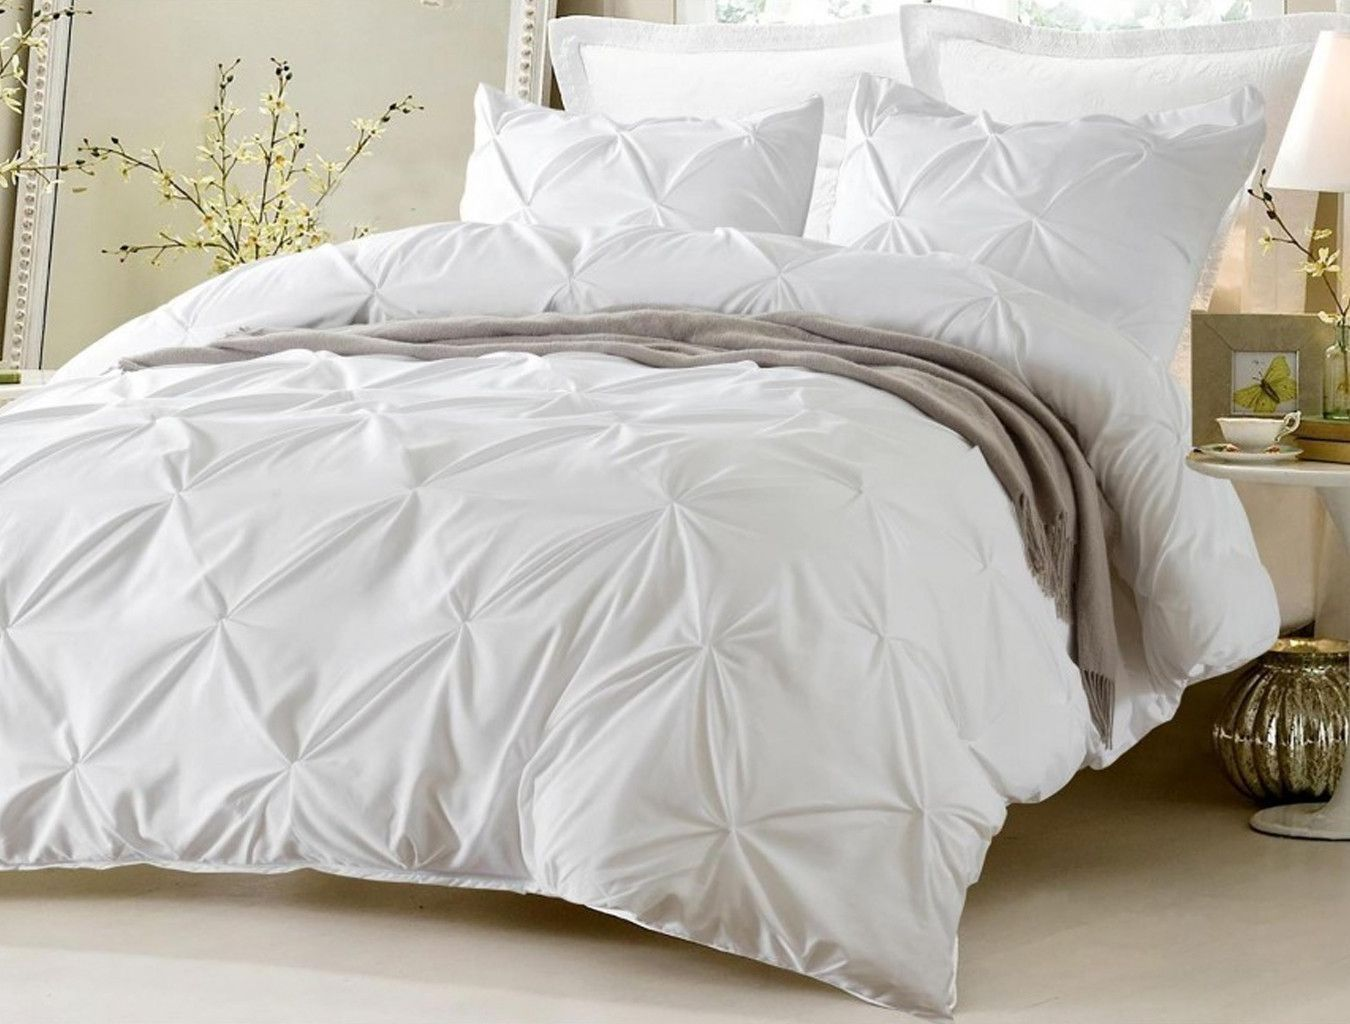 White Duvet Cover King Pinch Pleat Design White Duvet Cover Set Style 1006